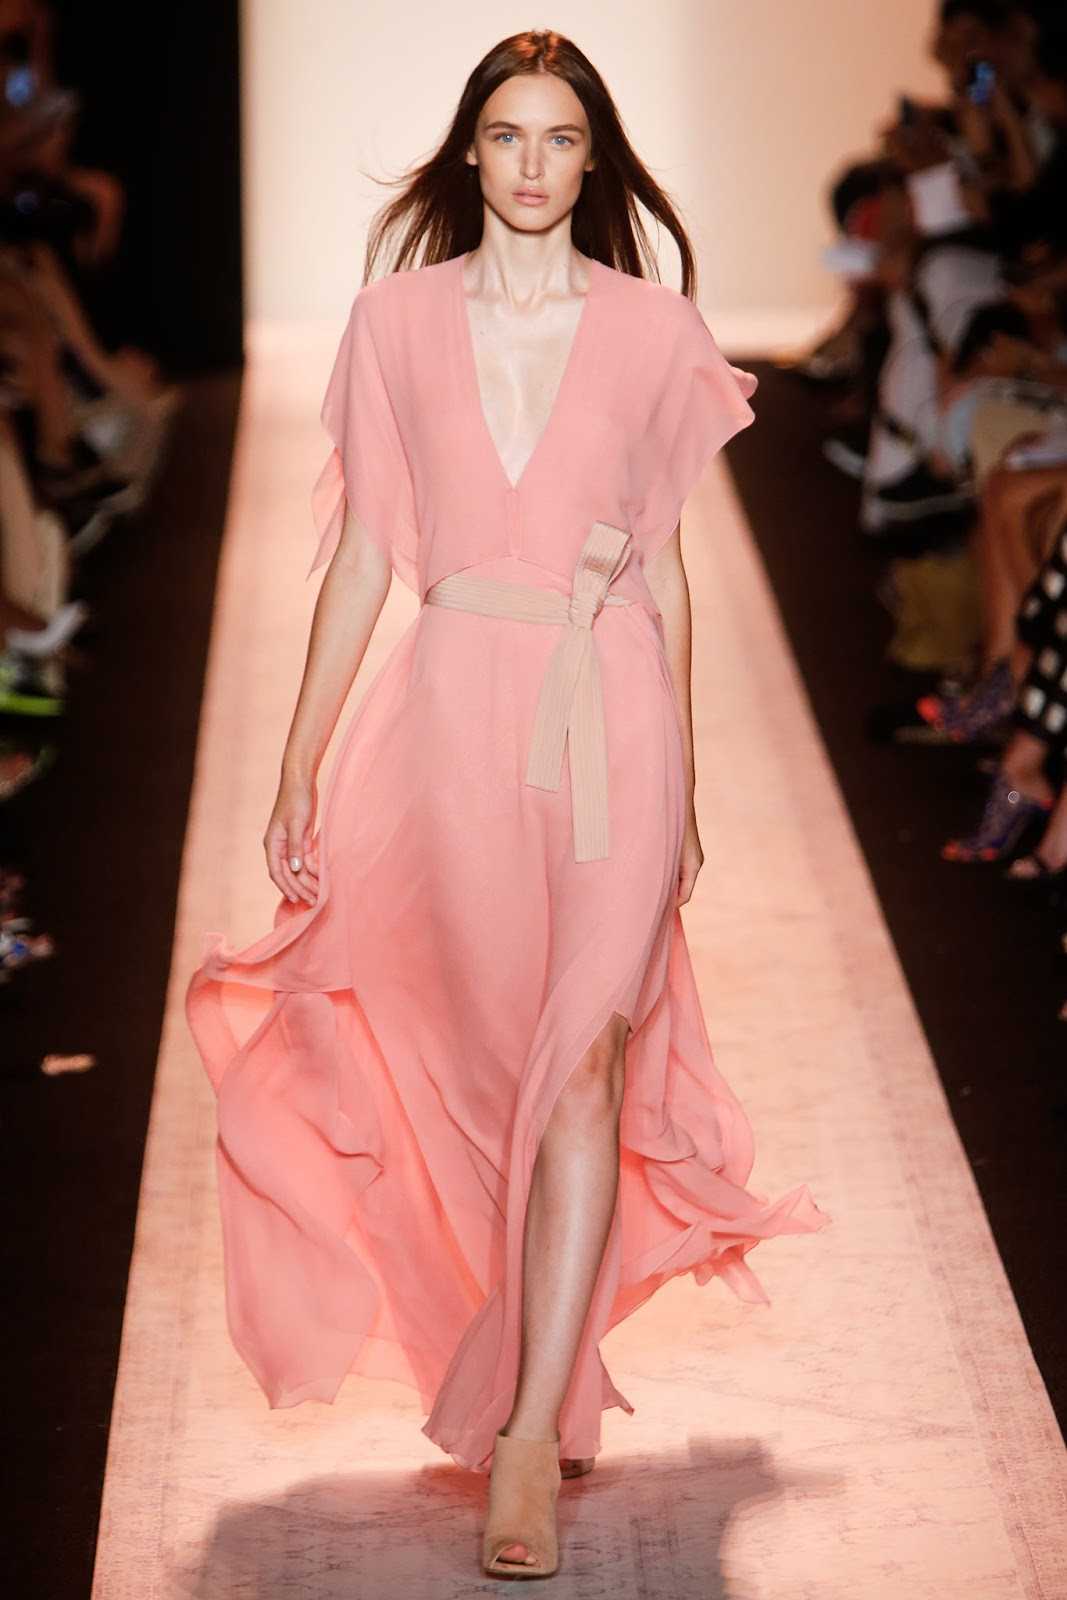 Pantone colour trend report 2015 / strawberry ice on a runway at BCBG Max Azria Spring/Summer 2015 via fashioned by love brutish fashion blog